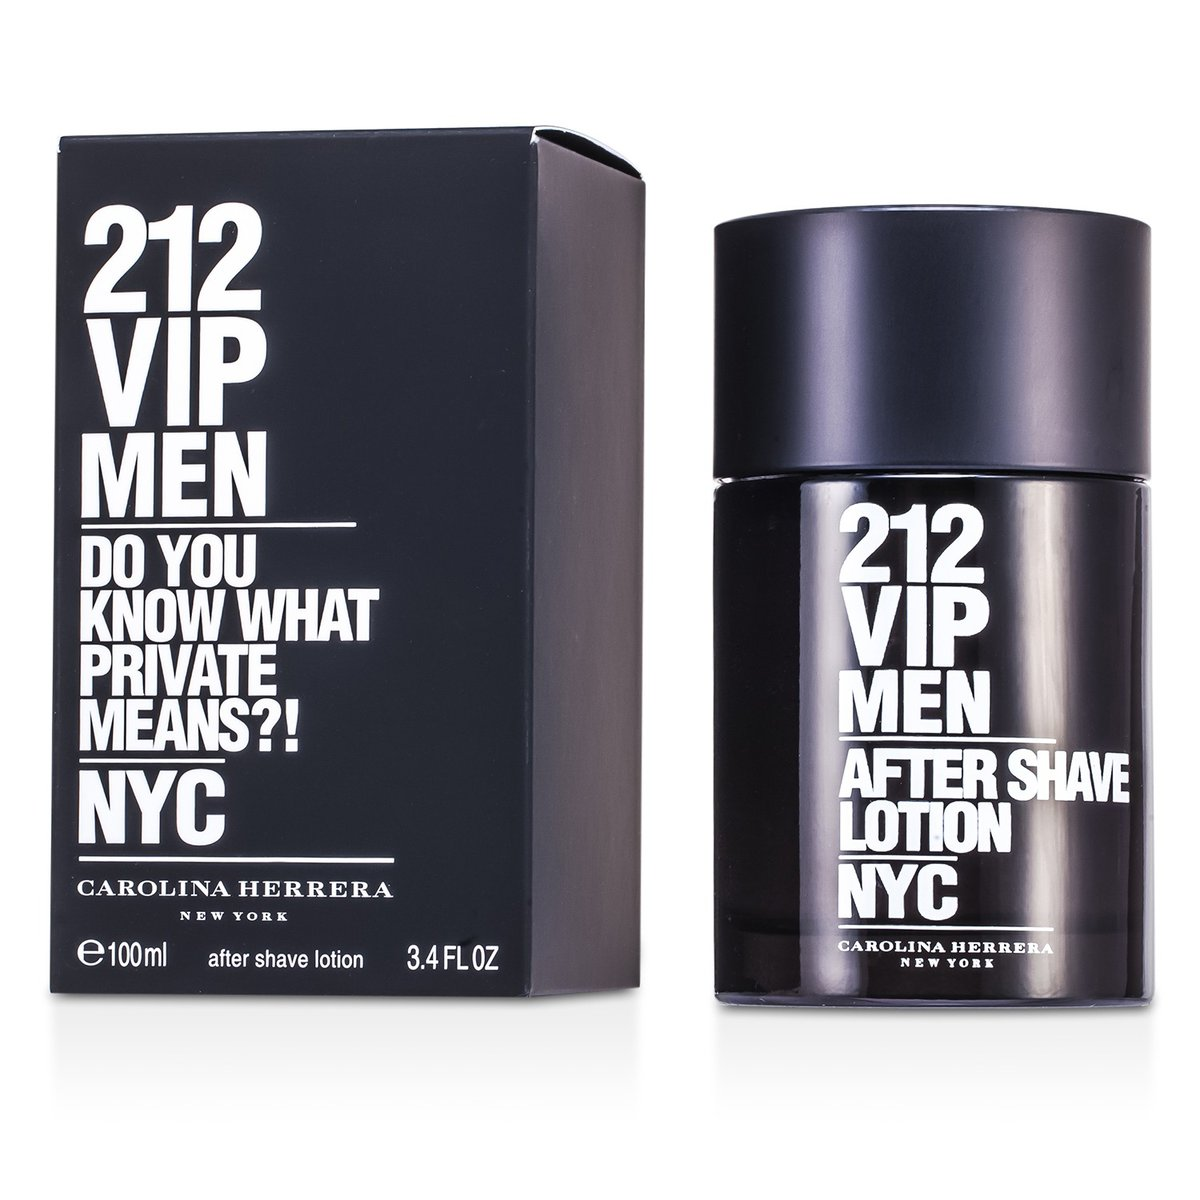 212 VIP After Shave Lotion -[平行進口]